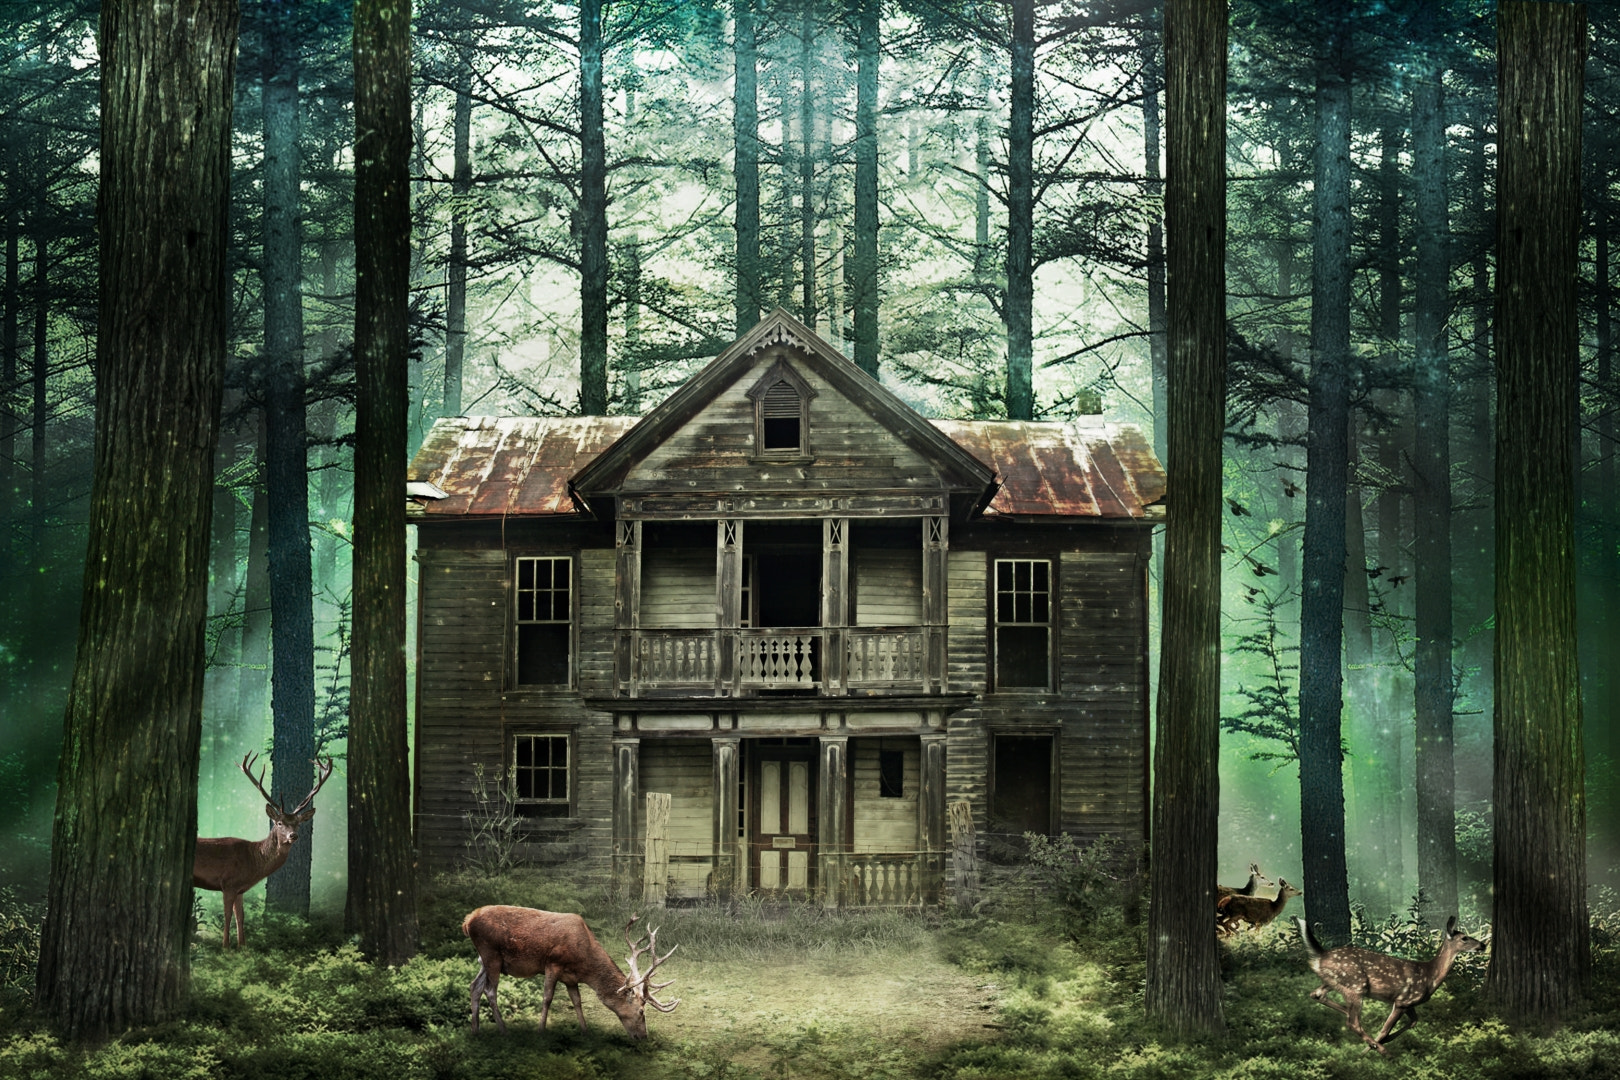 Photograph The old house of the forest by Miguel Angel Oliva on 500px